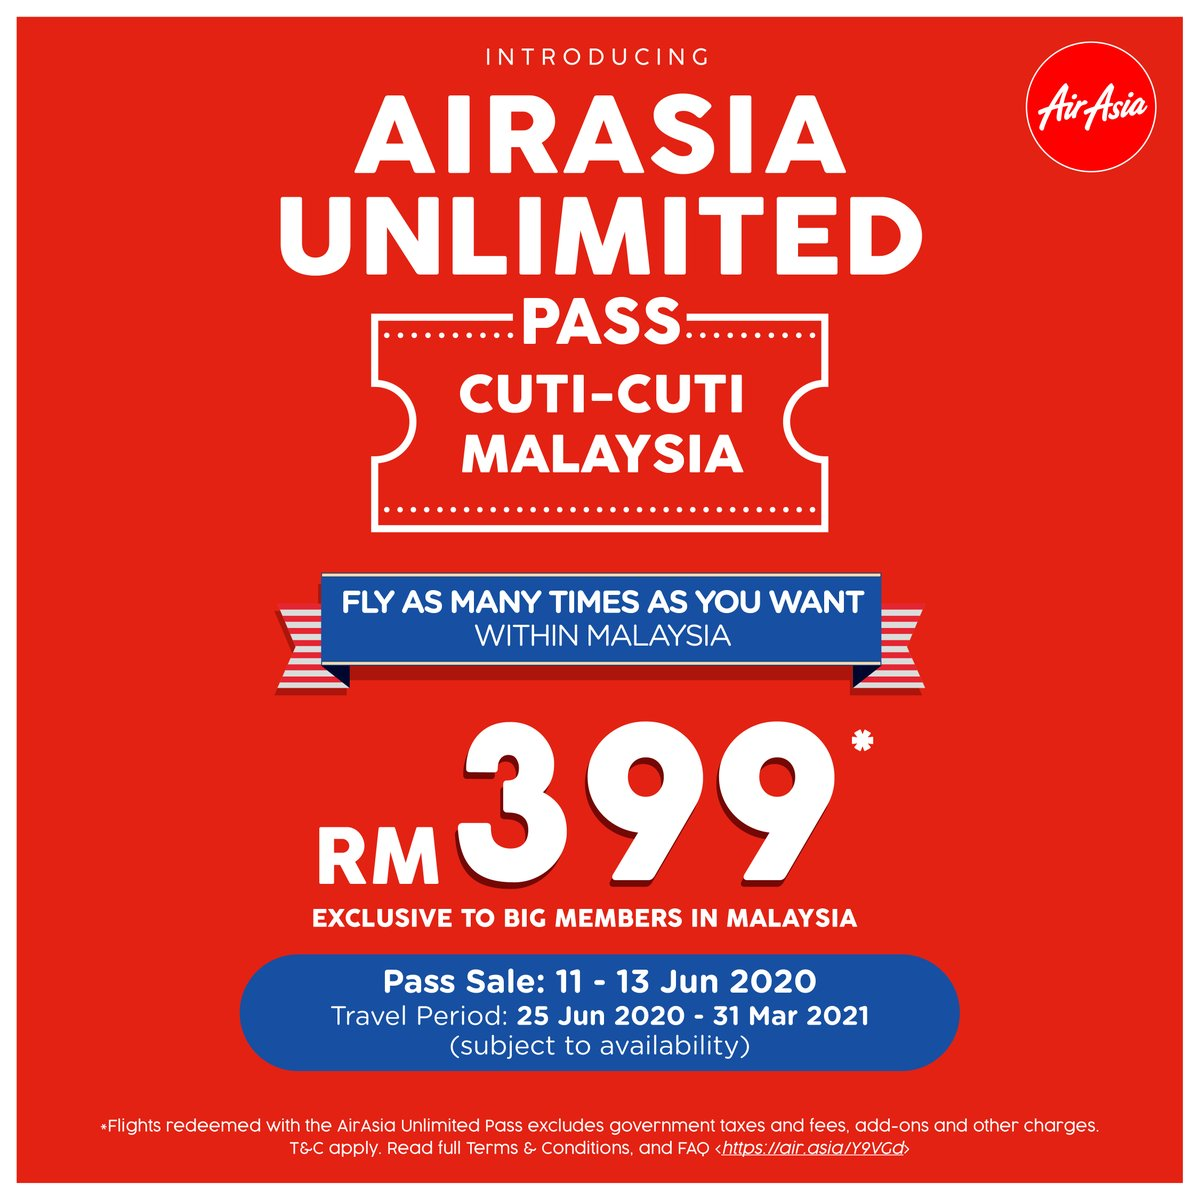 Thinking about getting the RM399 AirAsia Unlimited Pass? Here's all you need to know about it - from how much flight taxes would cost to how to purchase & redeem.  Read full T&C & FAQ https://t.co/nrOsZGeJ1a https://t.co/uTSamyzVp6